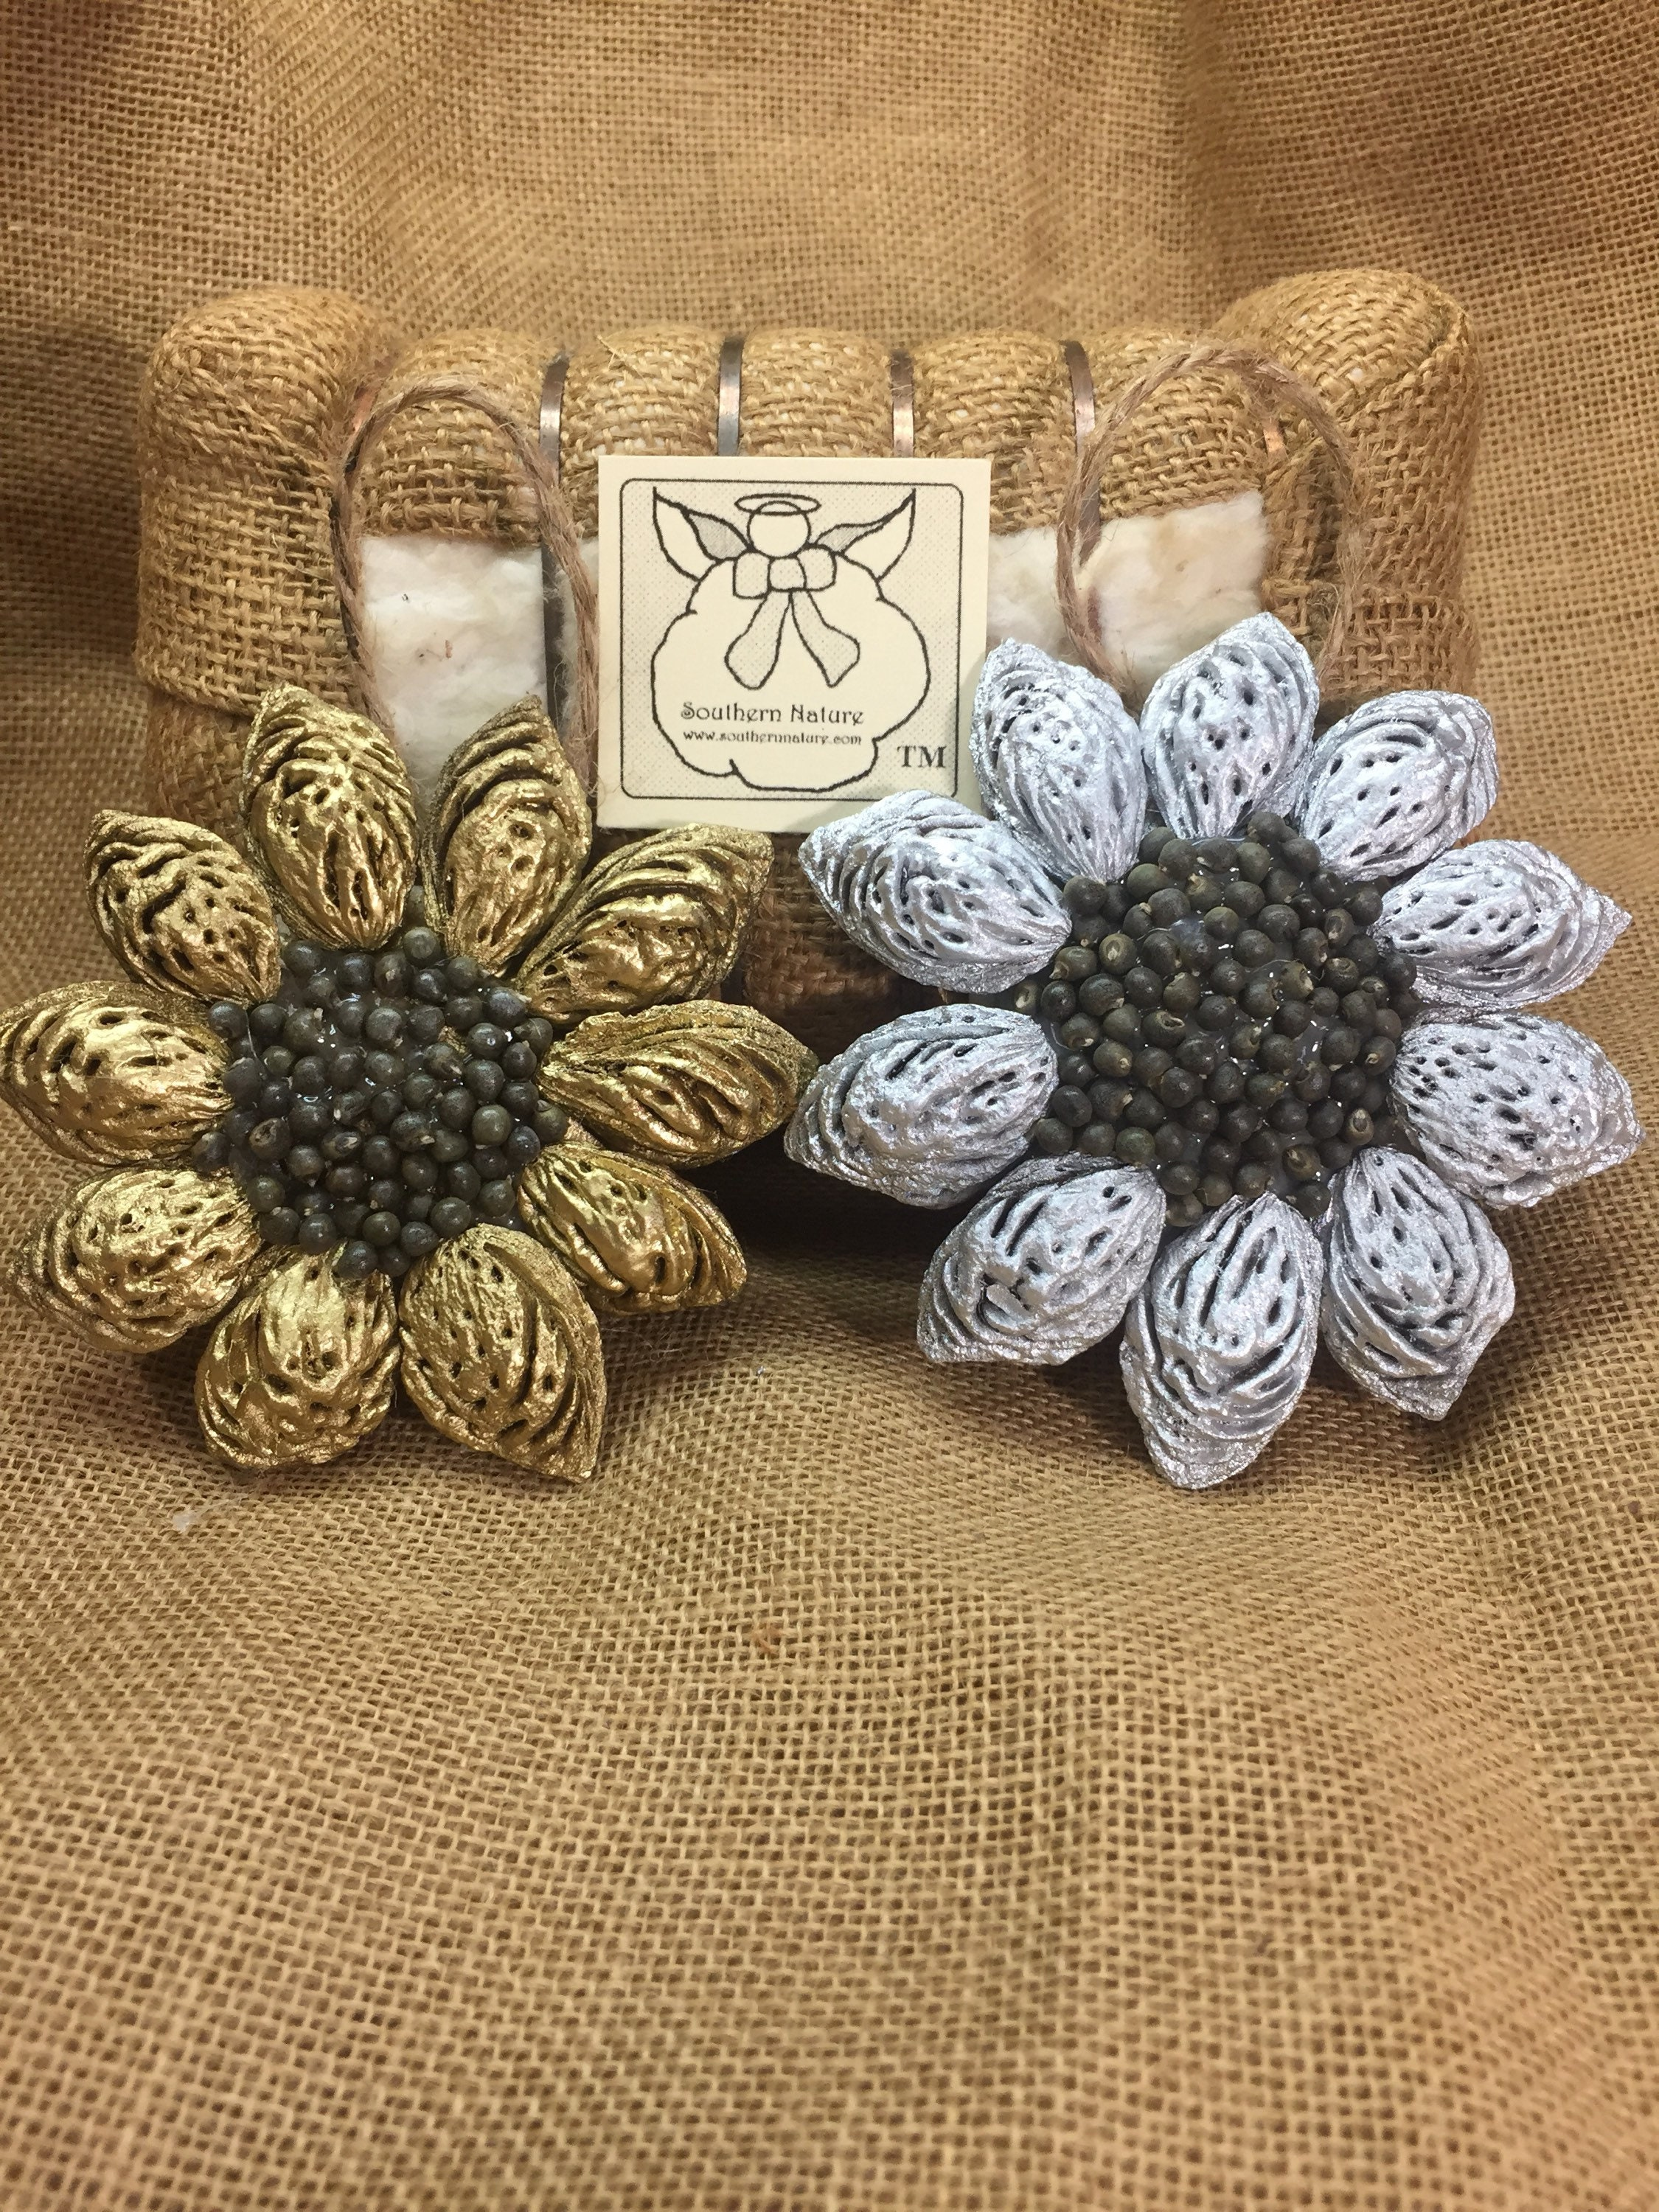 Sunflower Ornament Peach Gift Southern Nature Natural Peach Seed